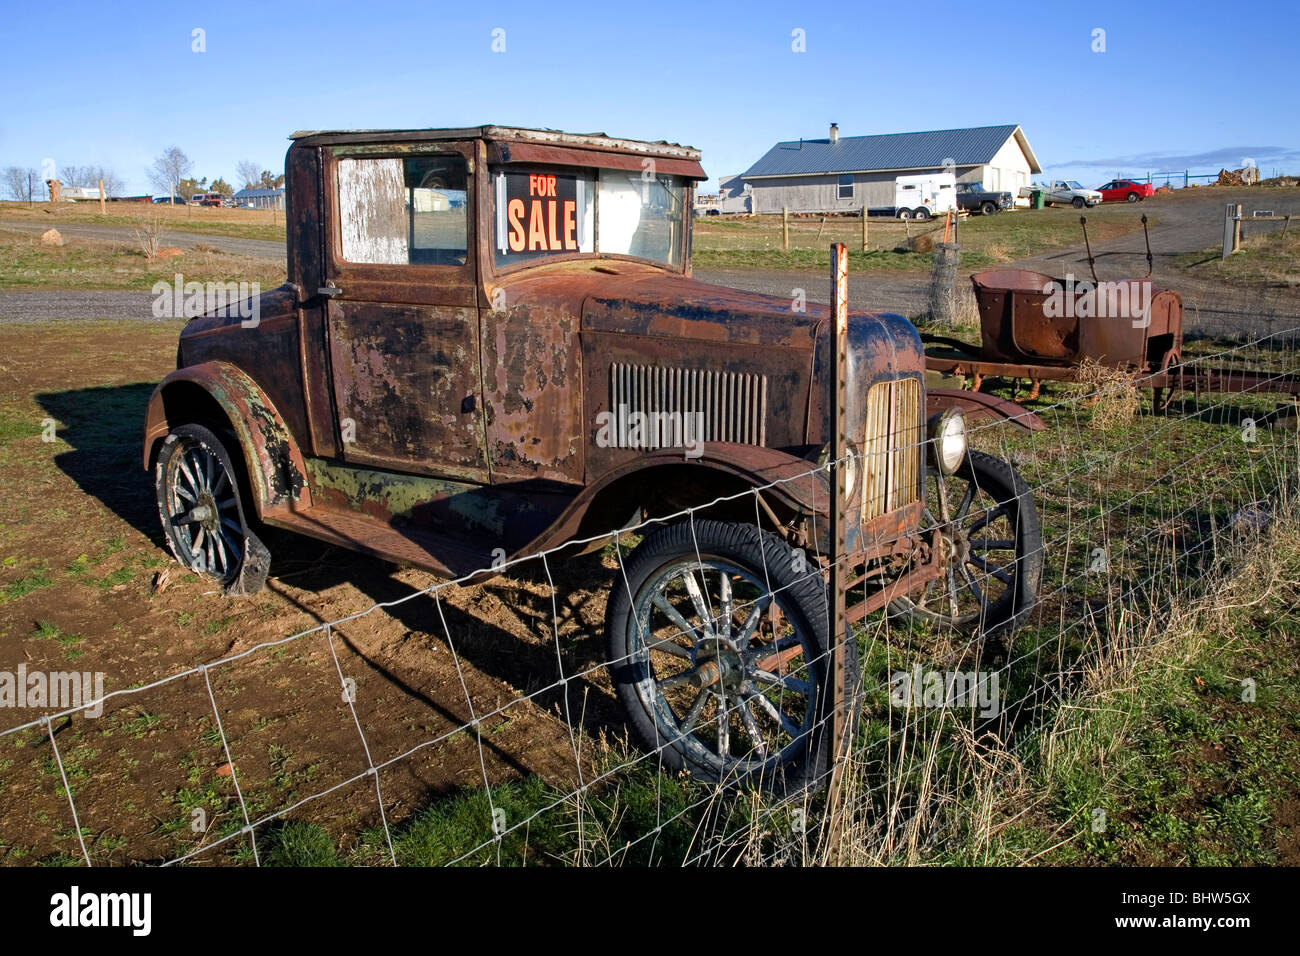 Old Antique Cars For Sale >> A For Sale sign on an ancient rusted classic car in a field near Stock Photo: 28212714 - Alamy